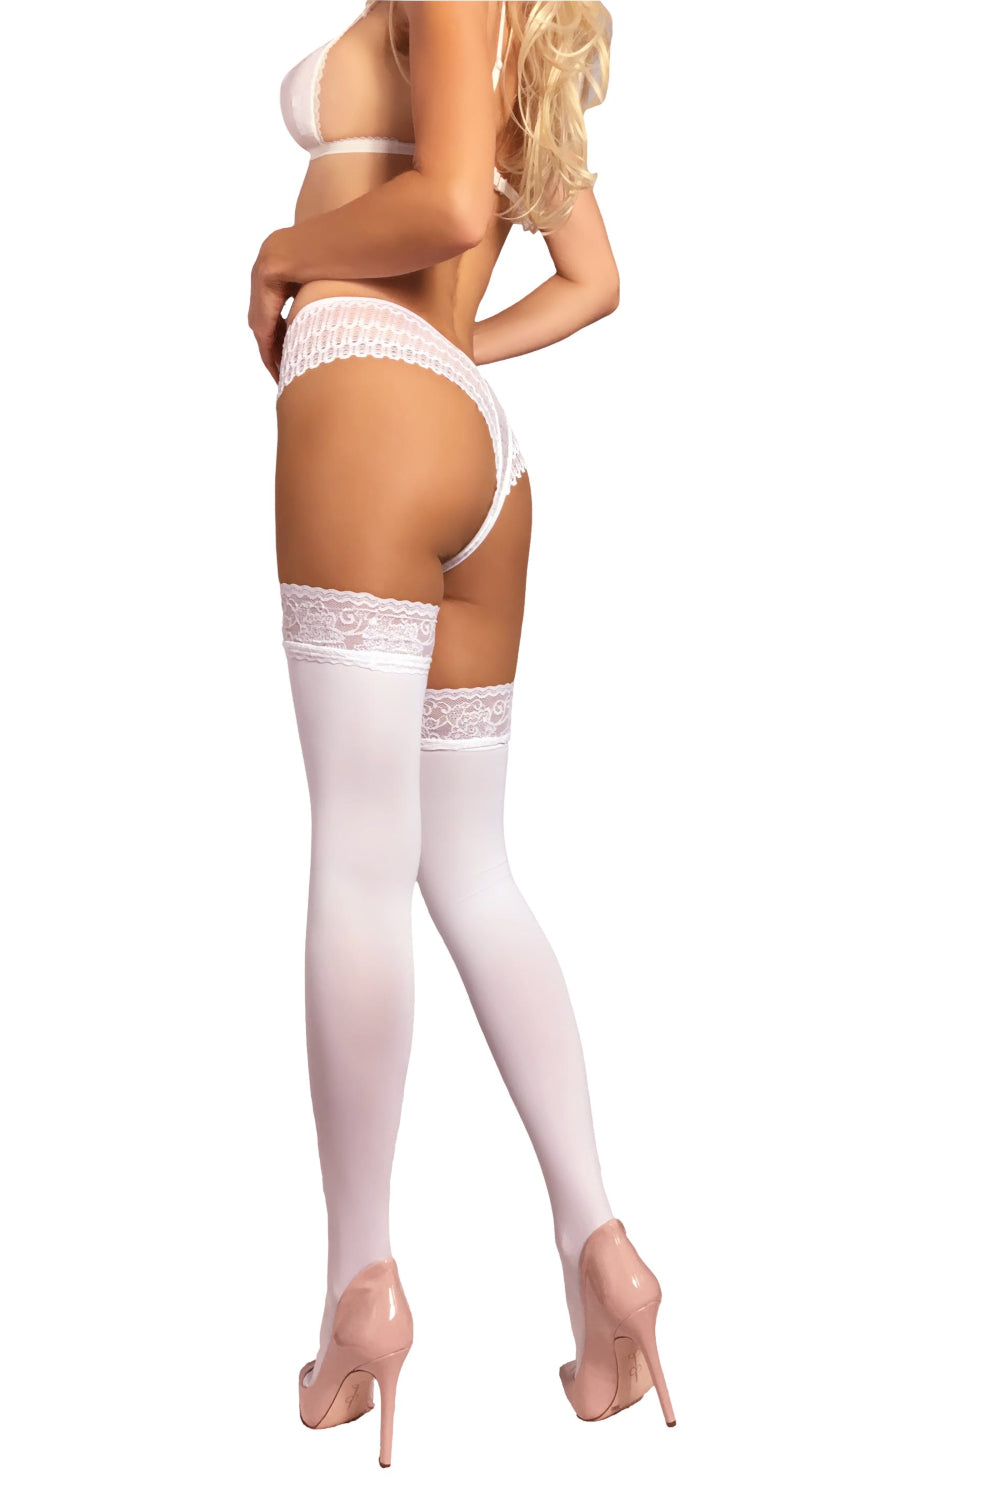 Opaque Thigh Highs 100 Den - White